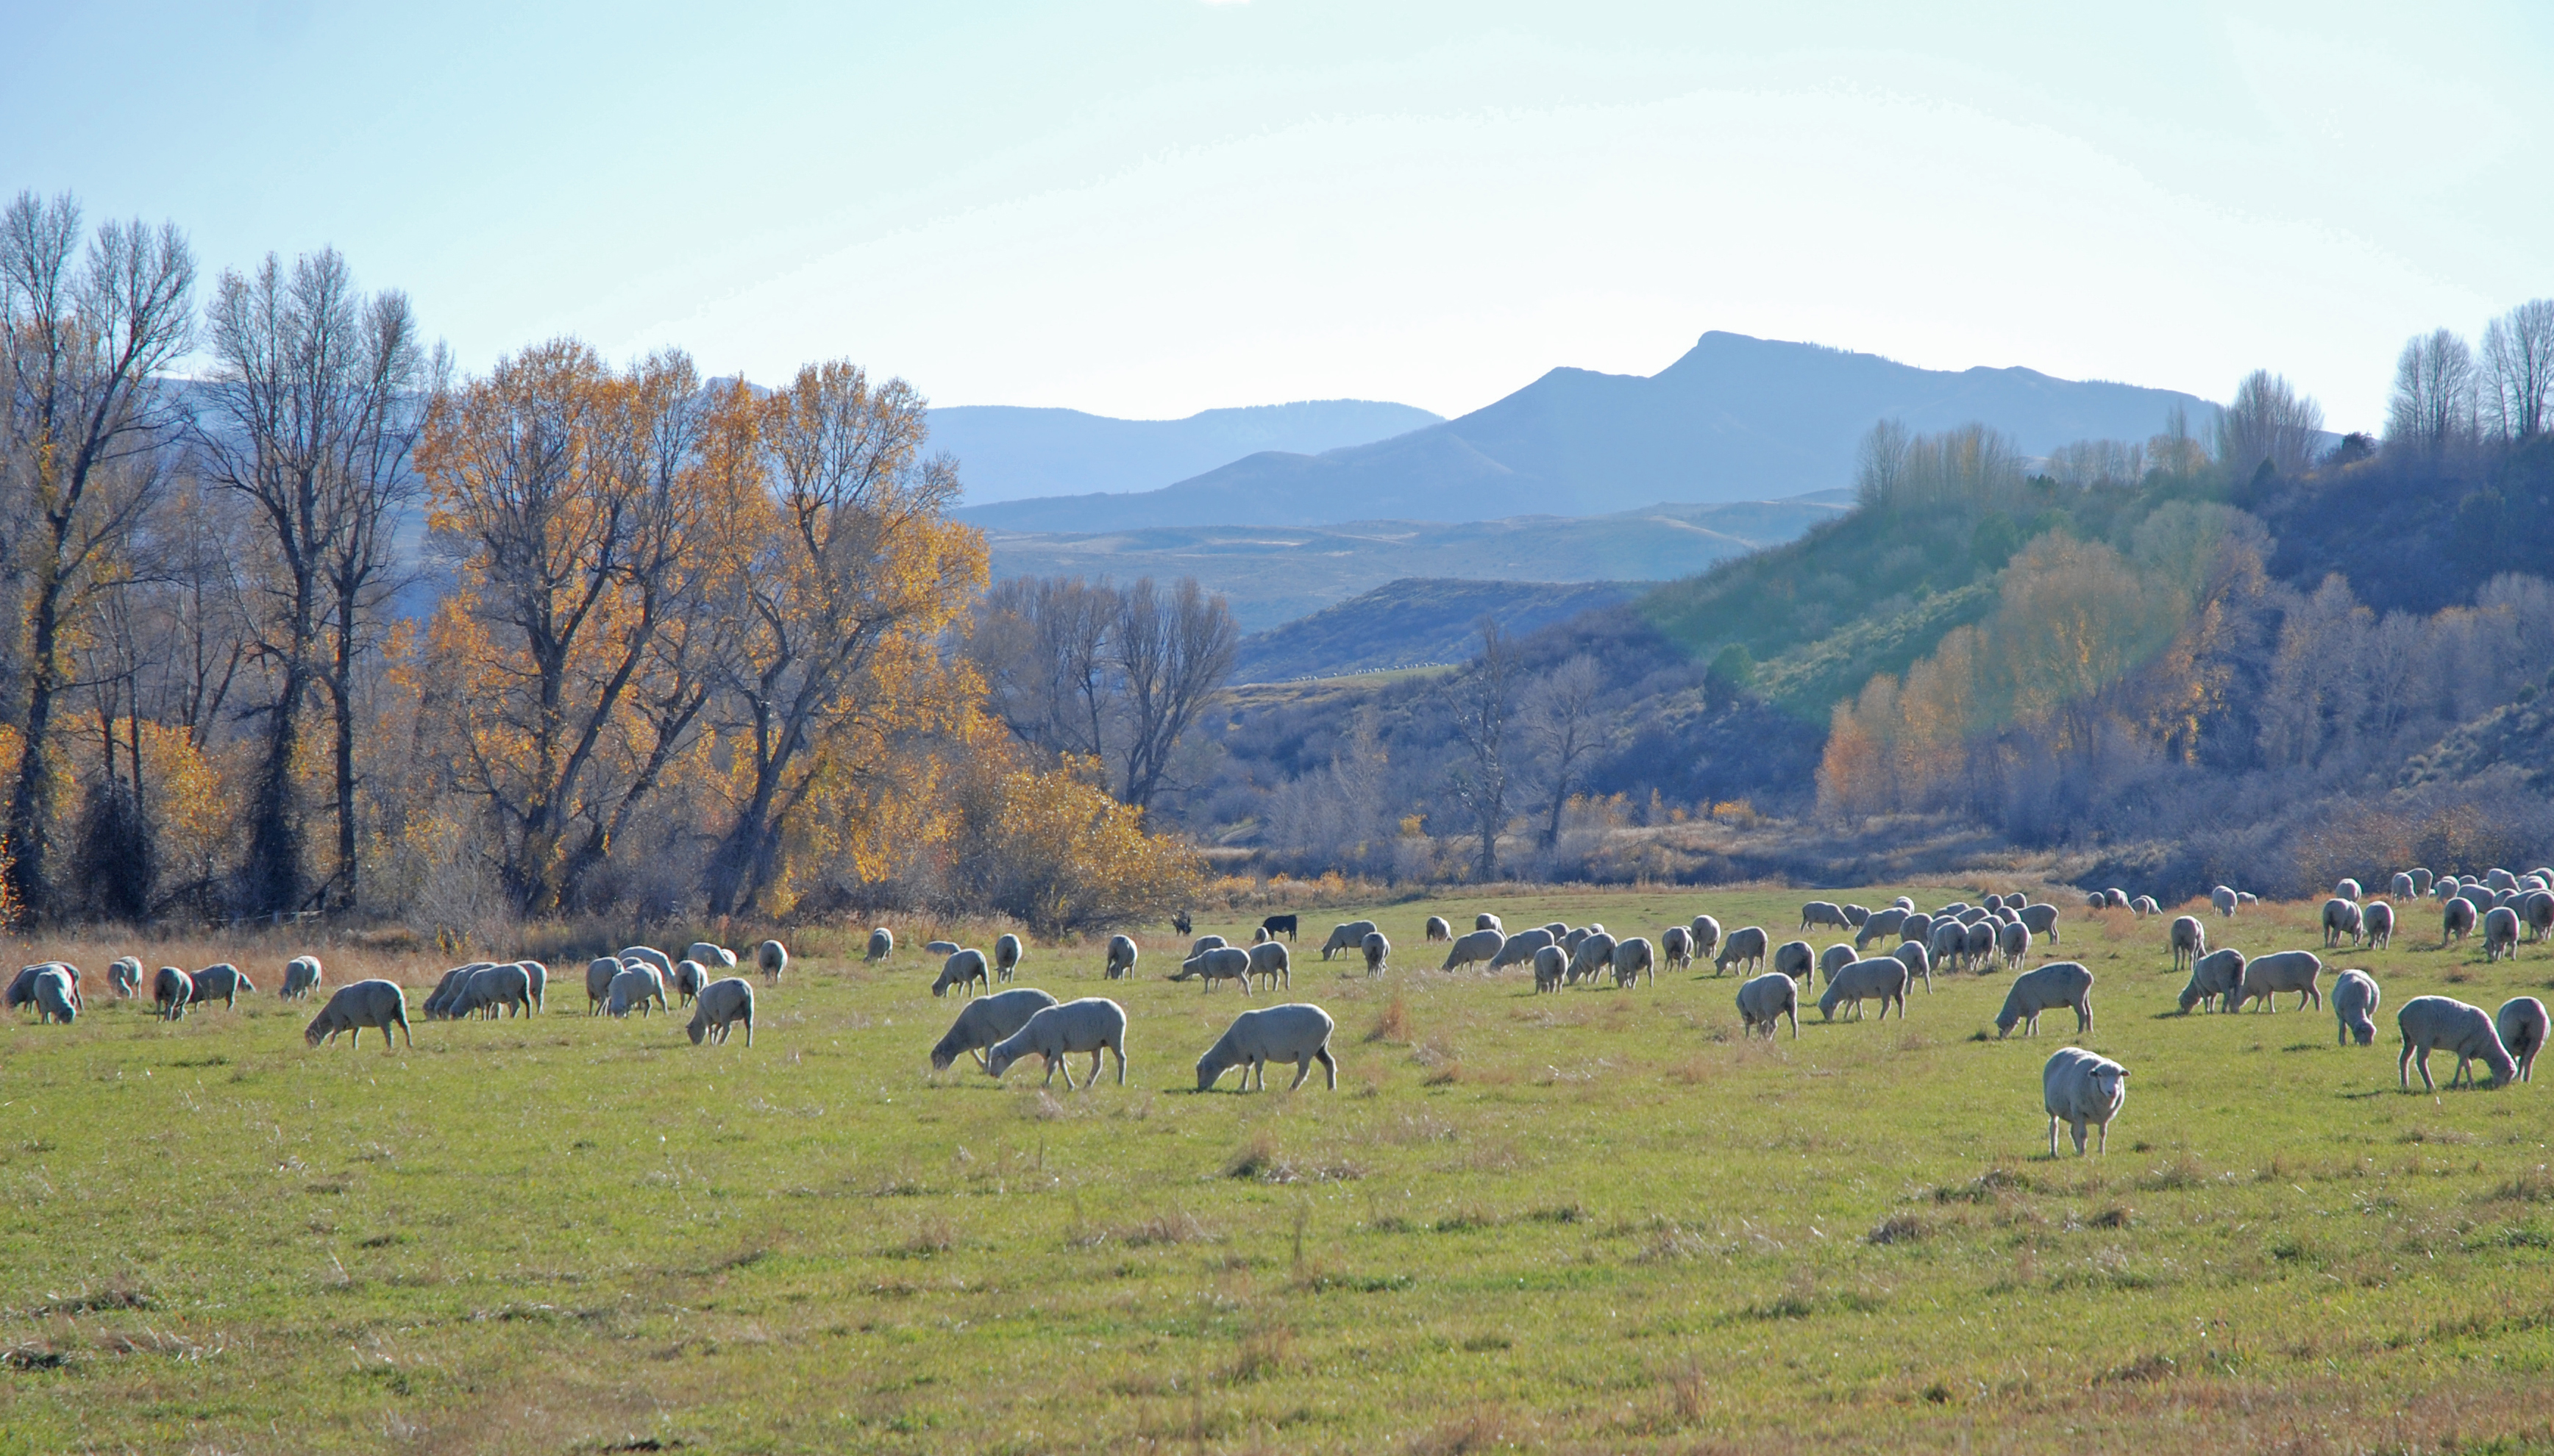 sheep ranch single personals Sheep shepherd needed in oregon scholls ferry farm scholls, or  ranch  hand needed for sheep ranch & quail operation spirit sheep ranch stockton .